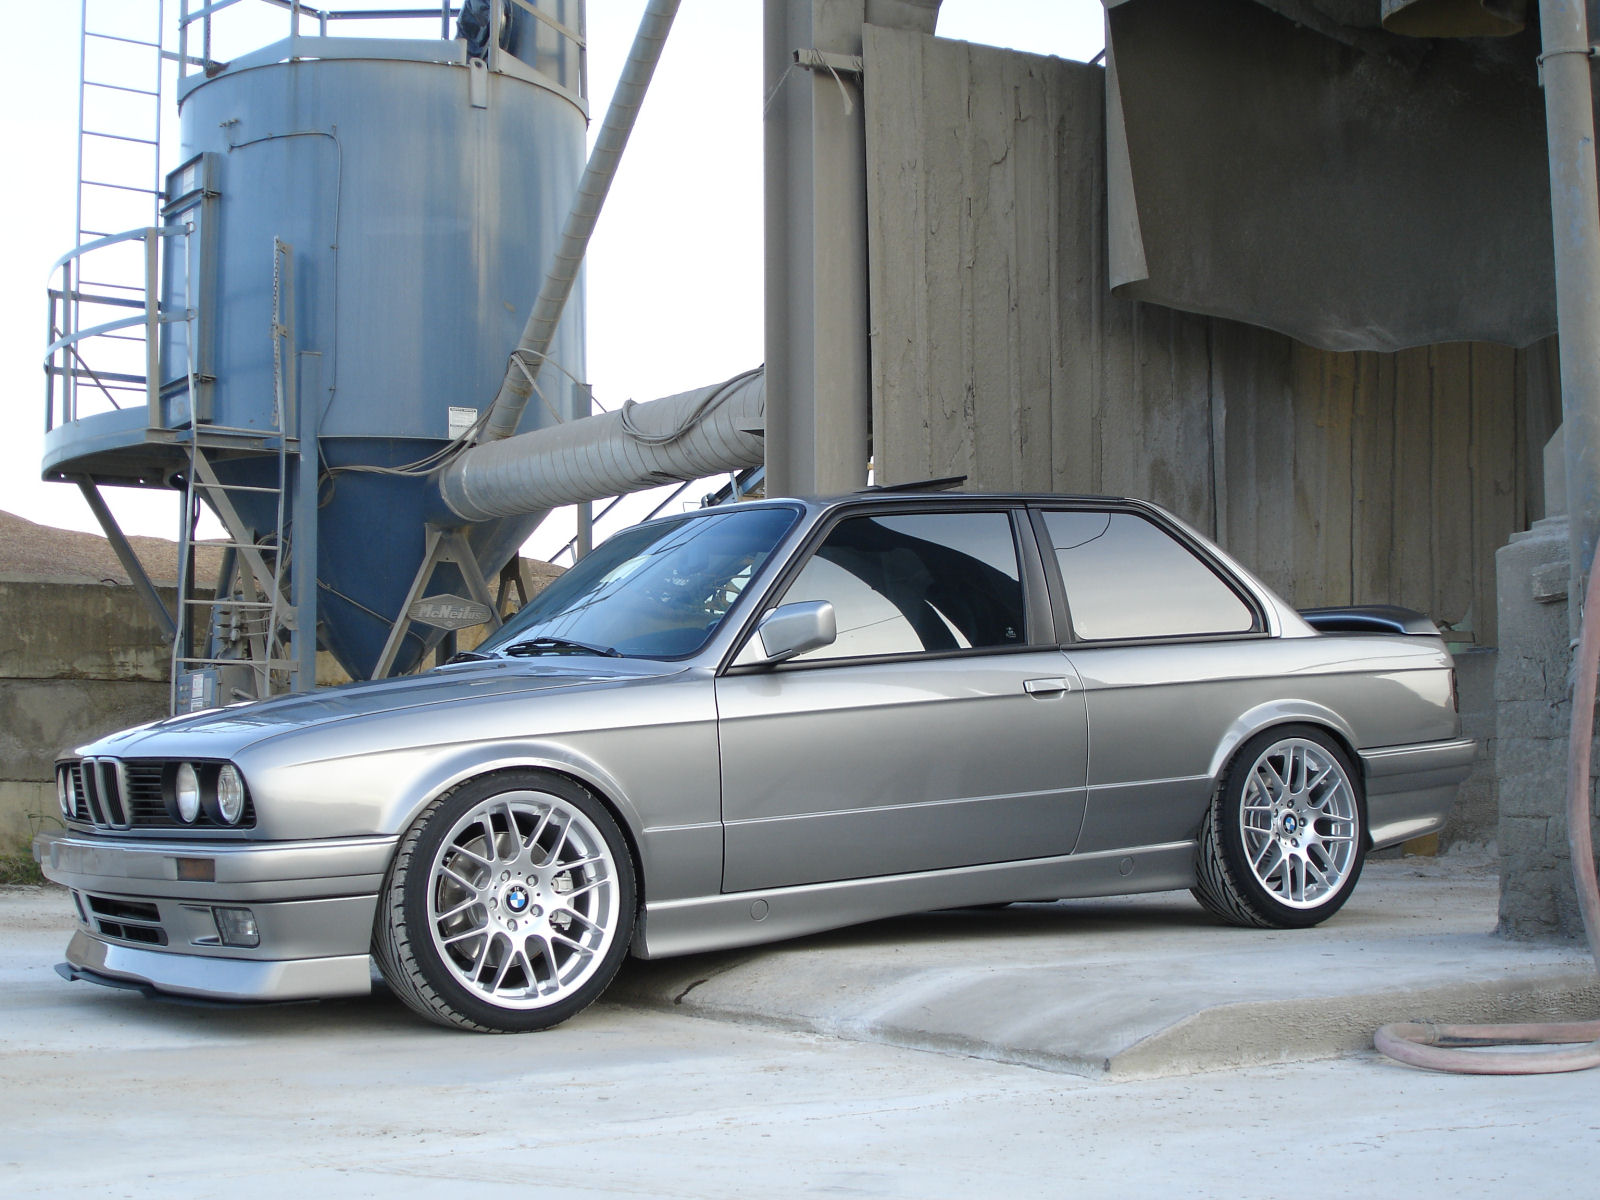 BMW 3 series 325is 1991 photo - 2